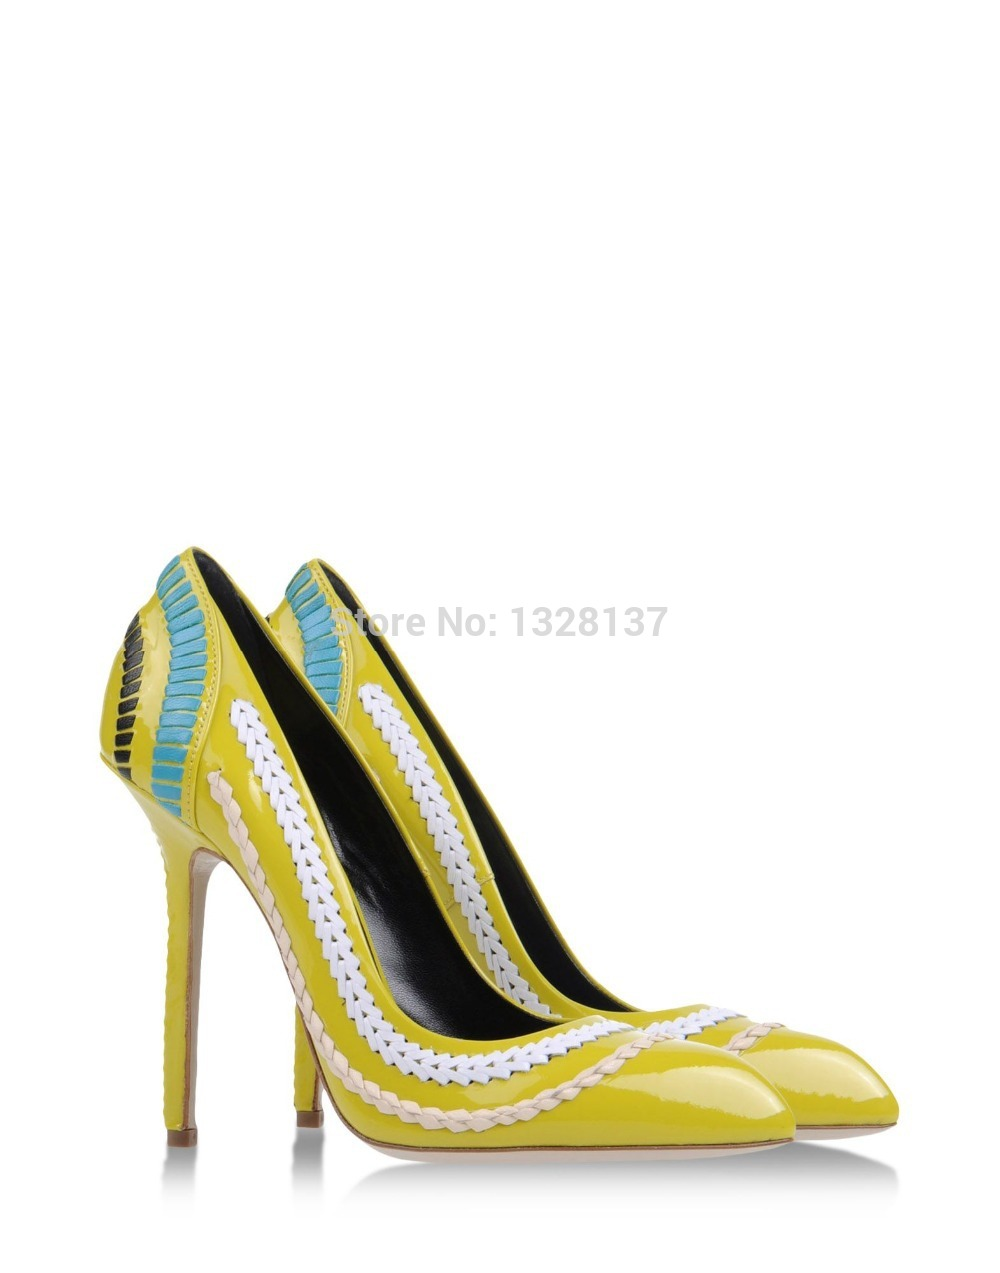 Compare Prices on 3 Inch Yellow Heels- Online Shopping/Buy Low ...